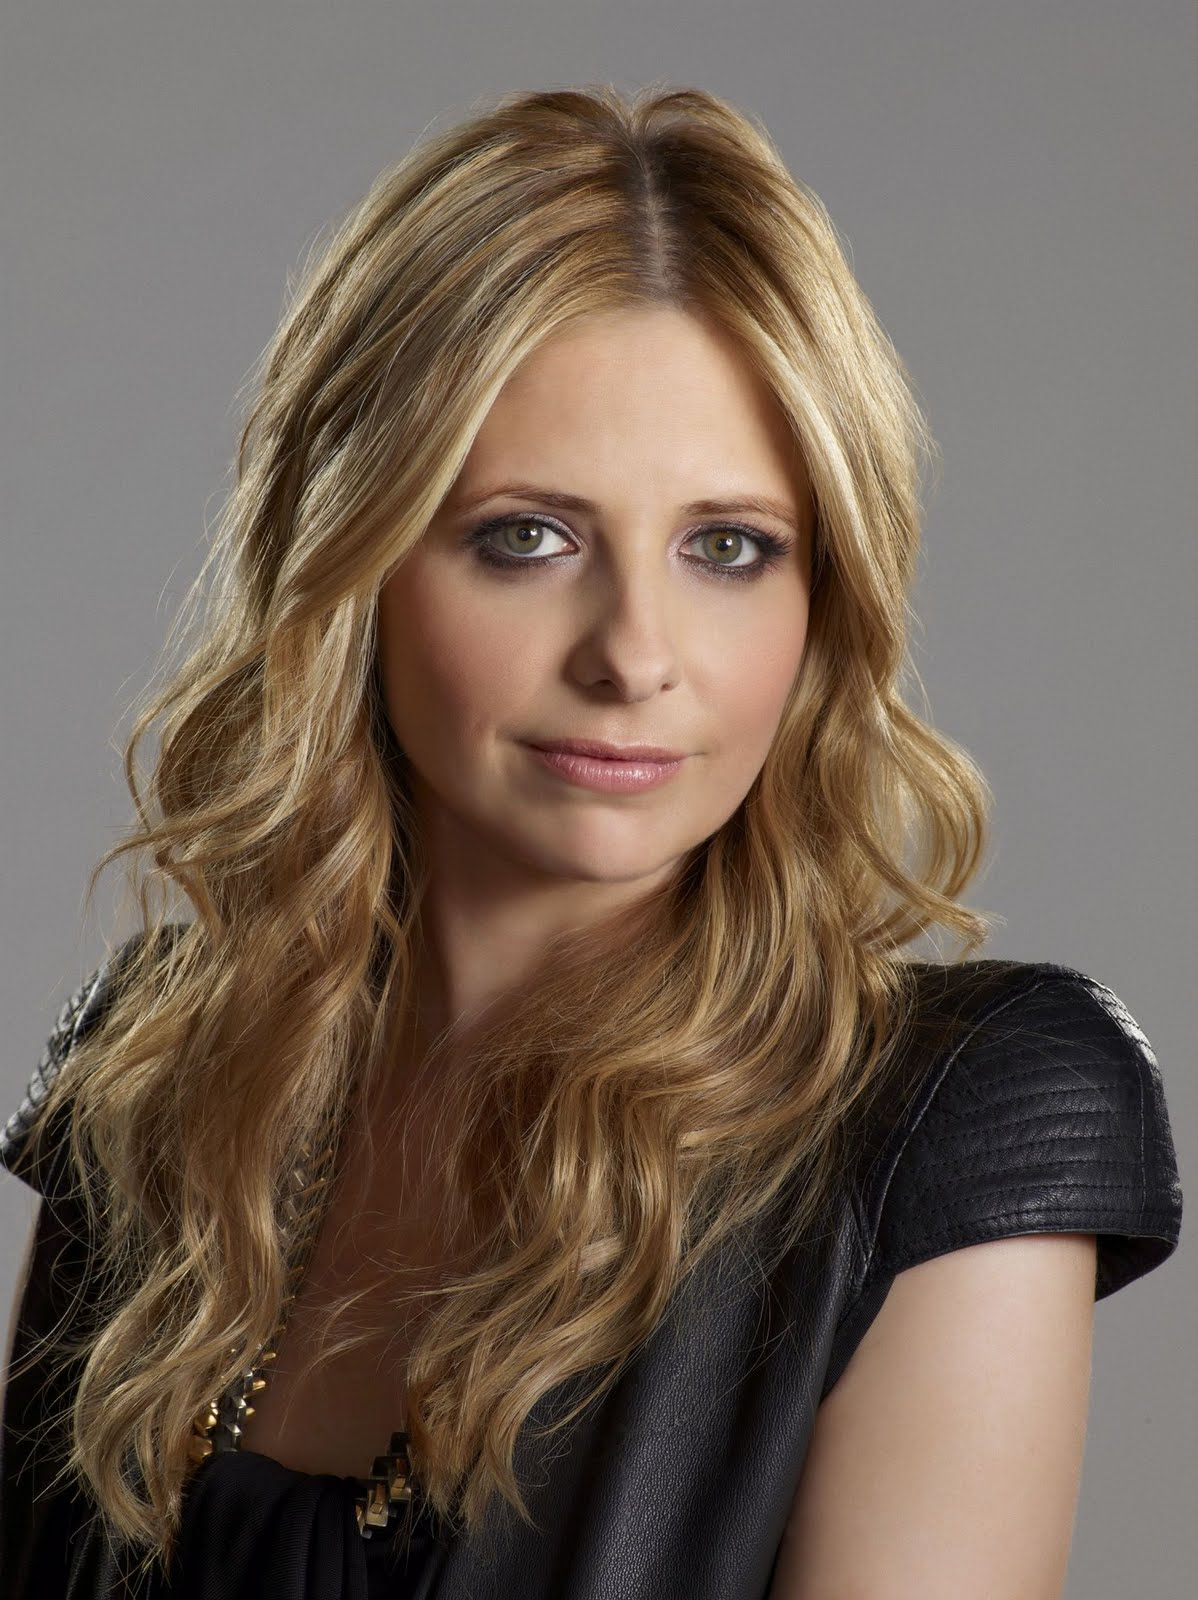 Sarah Michelle Gellar | Star Wars Rebels Wiki | Fandom powered by